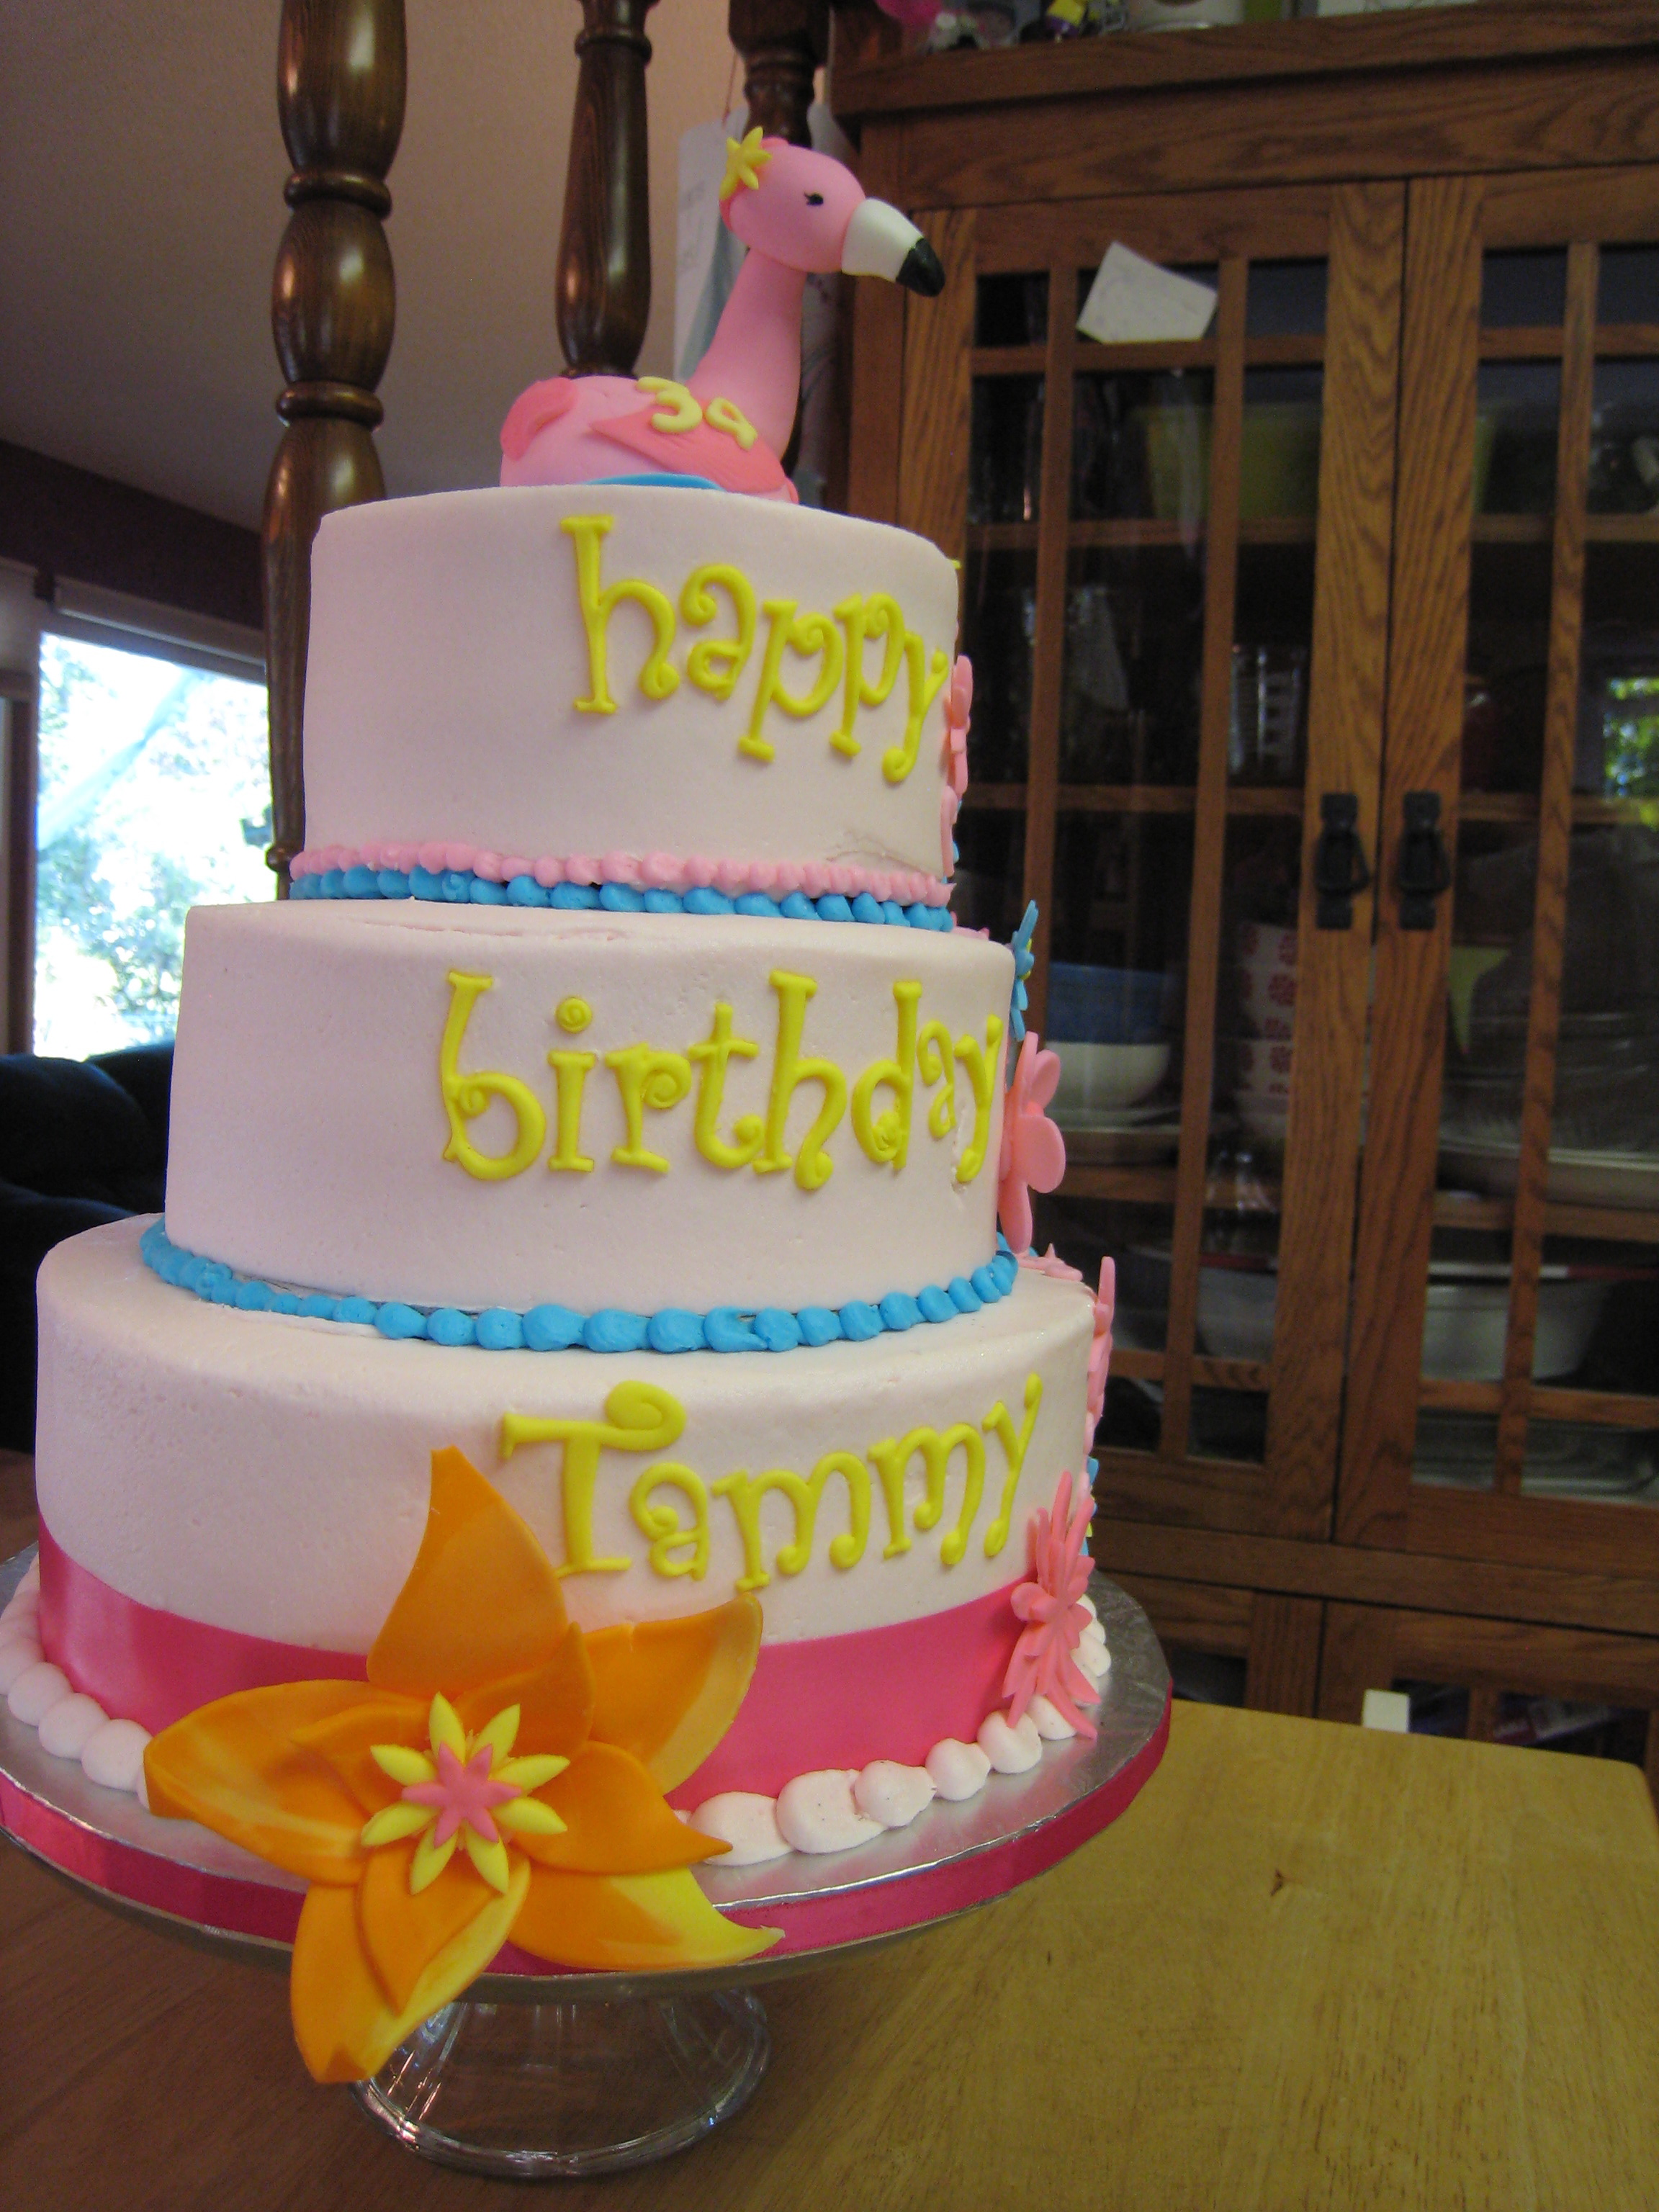 Happy Birthday To You Confectionery Cake Shop